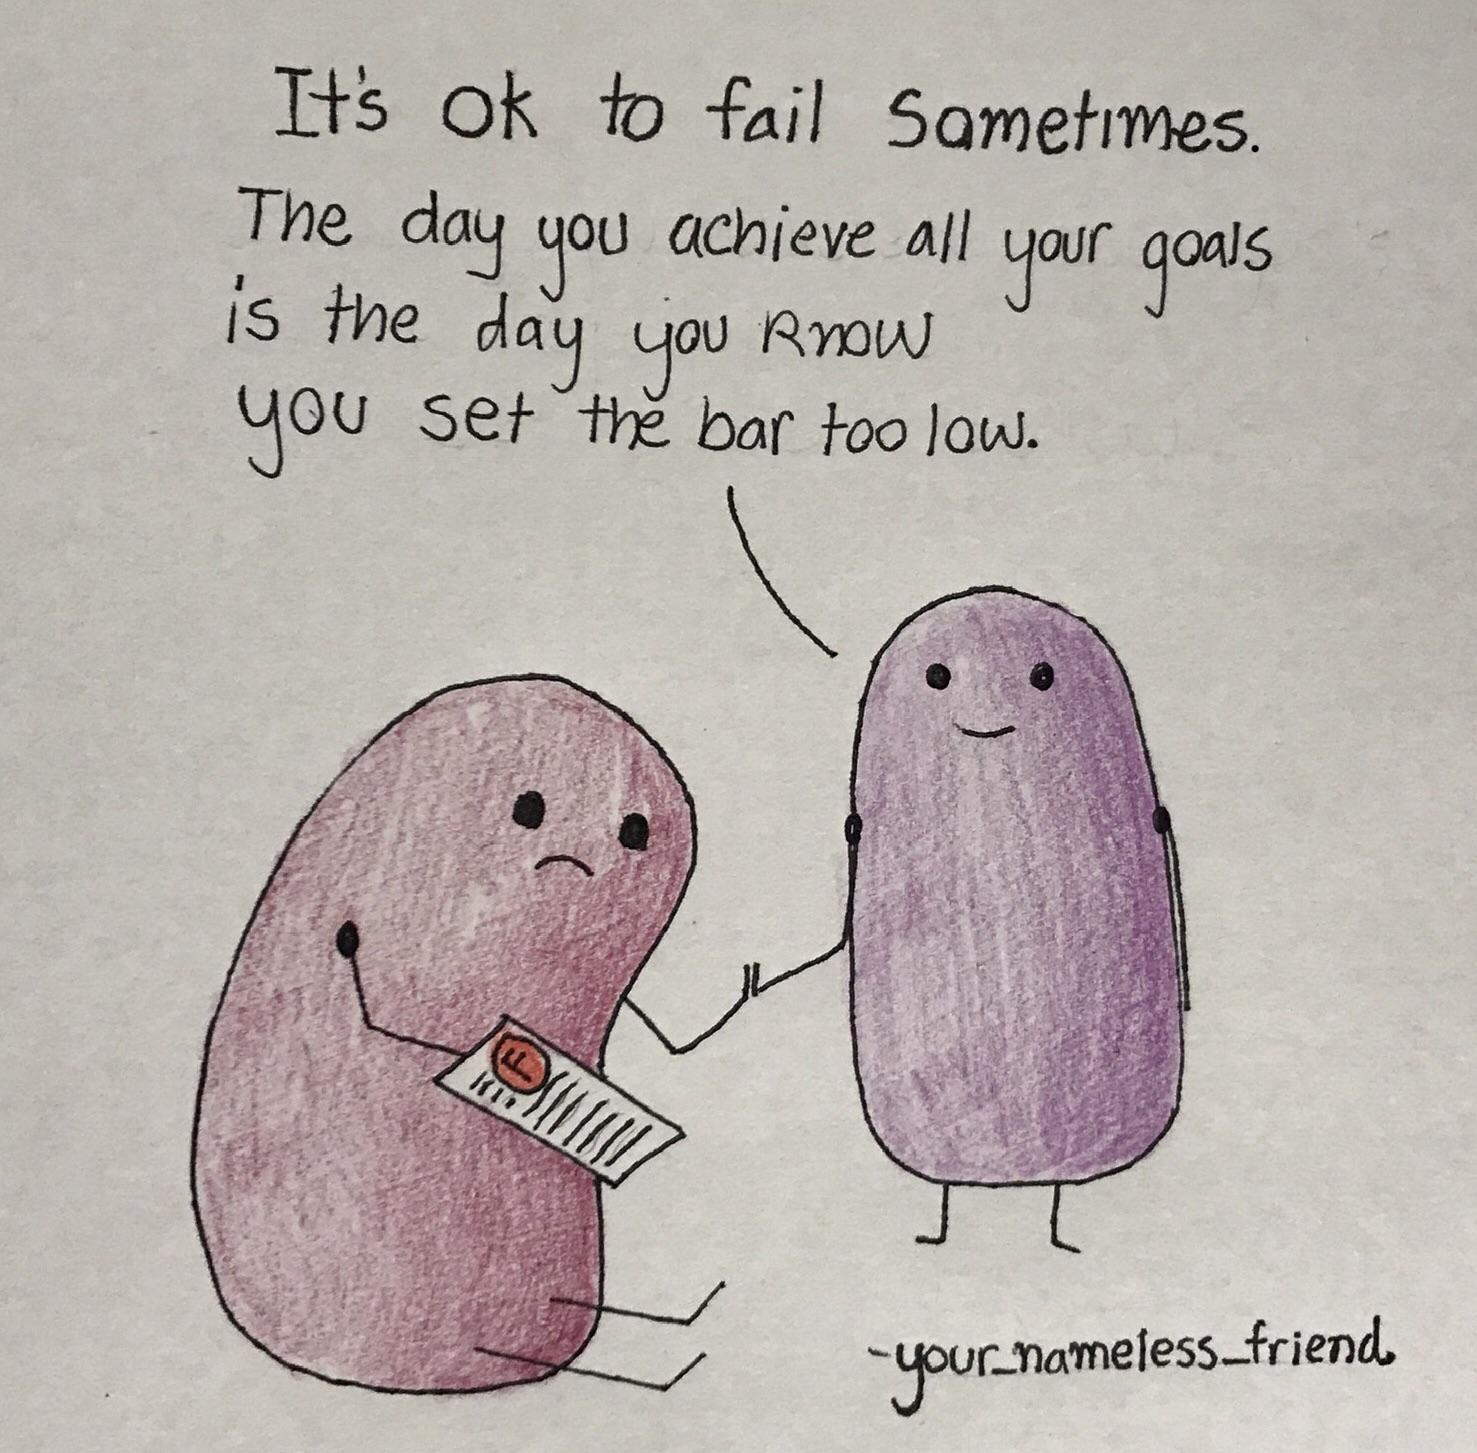 [image] it's ok